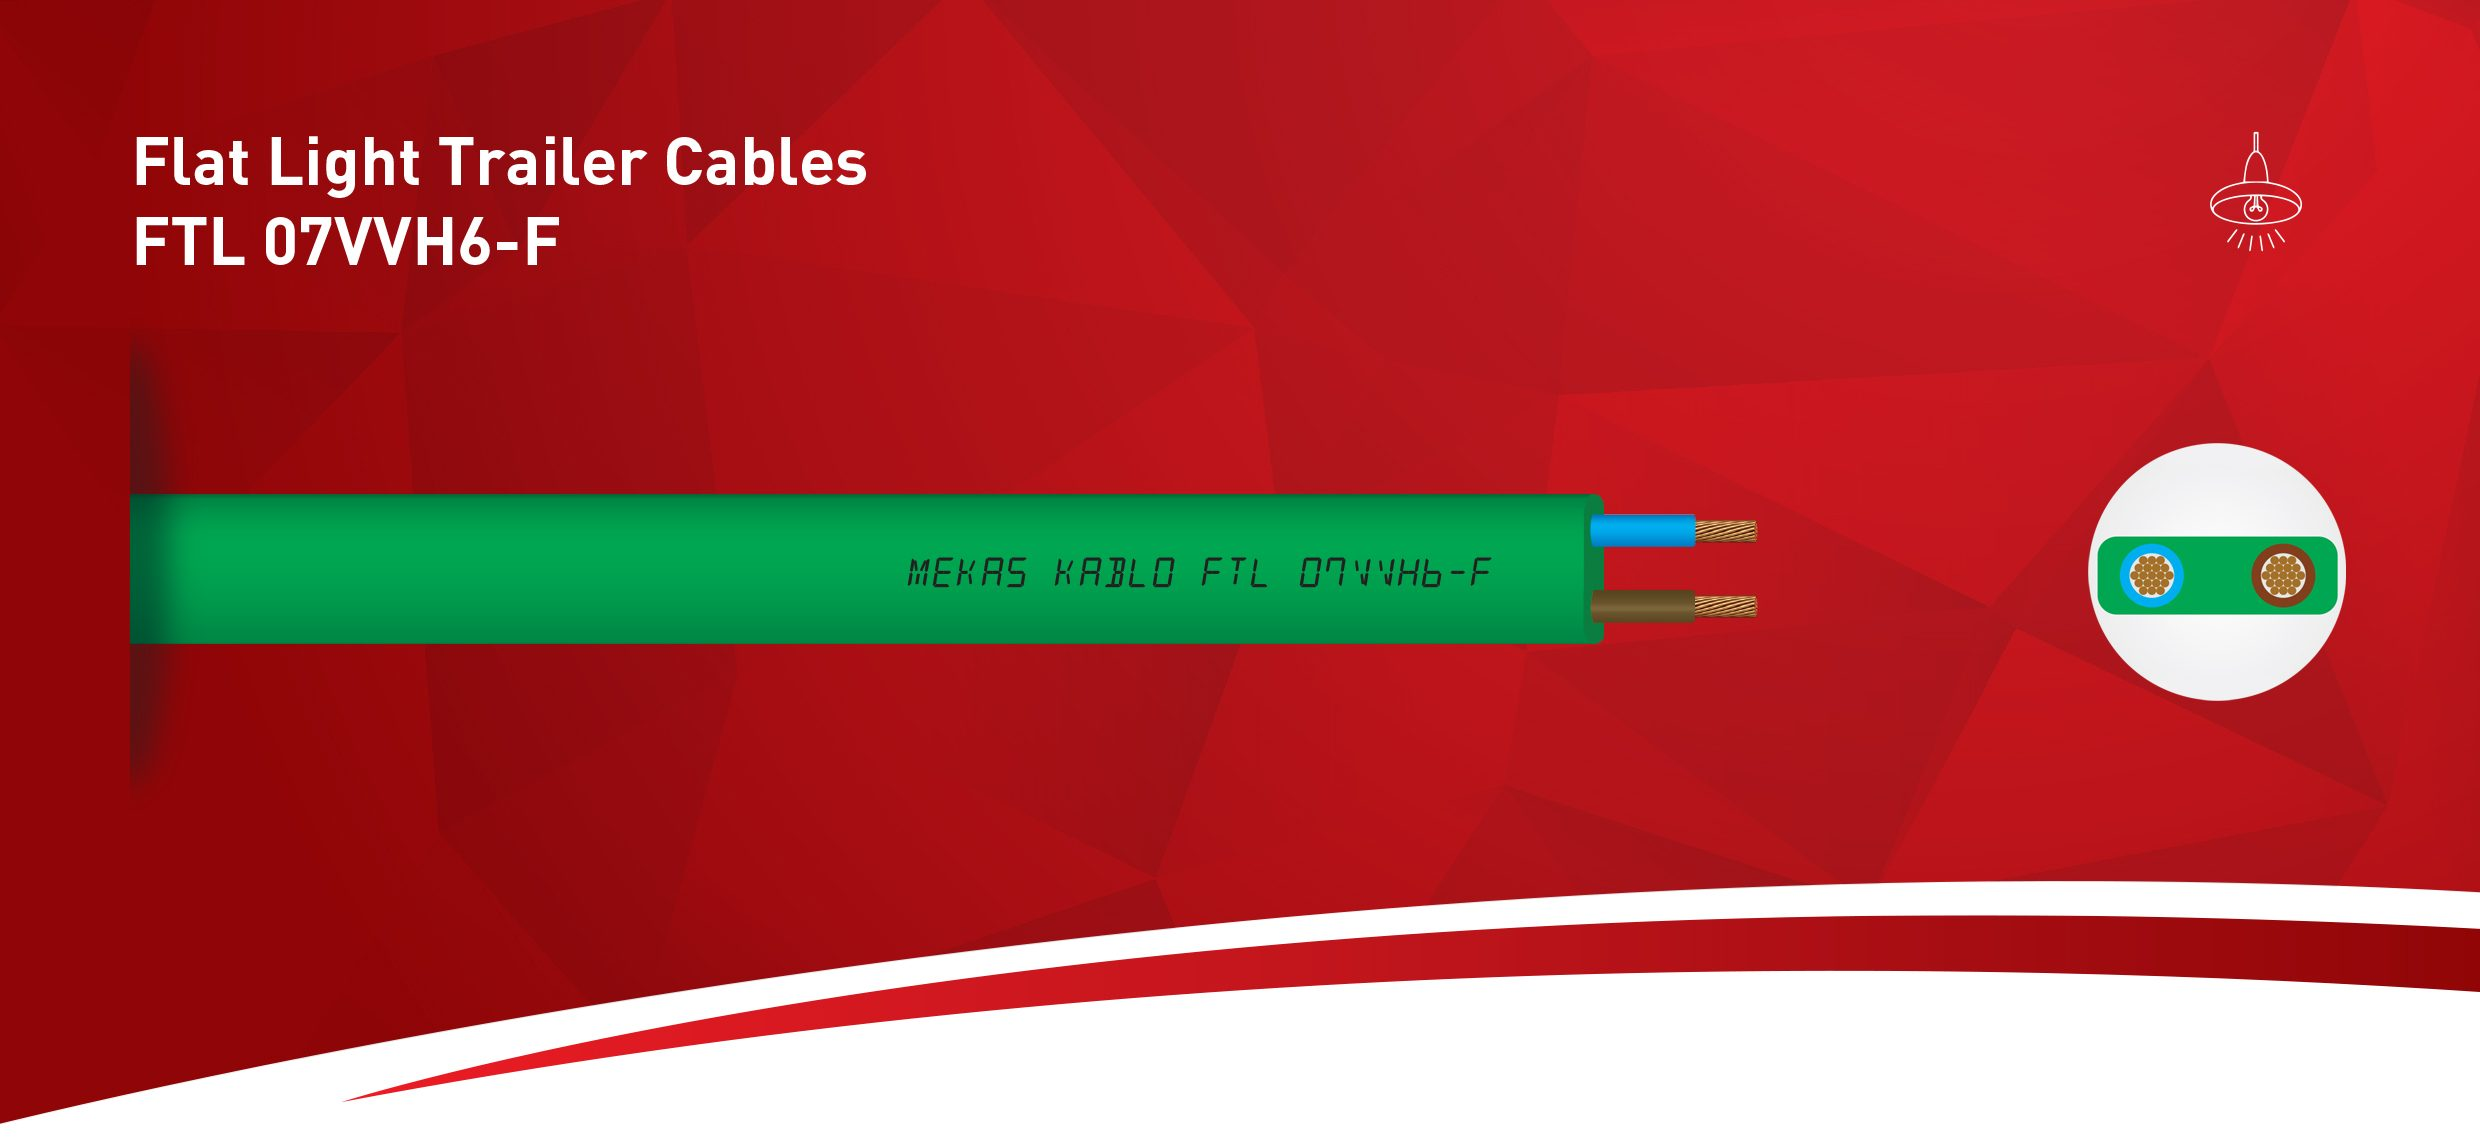 Flat Light Trailer Cables